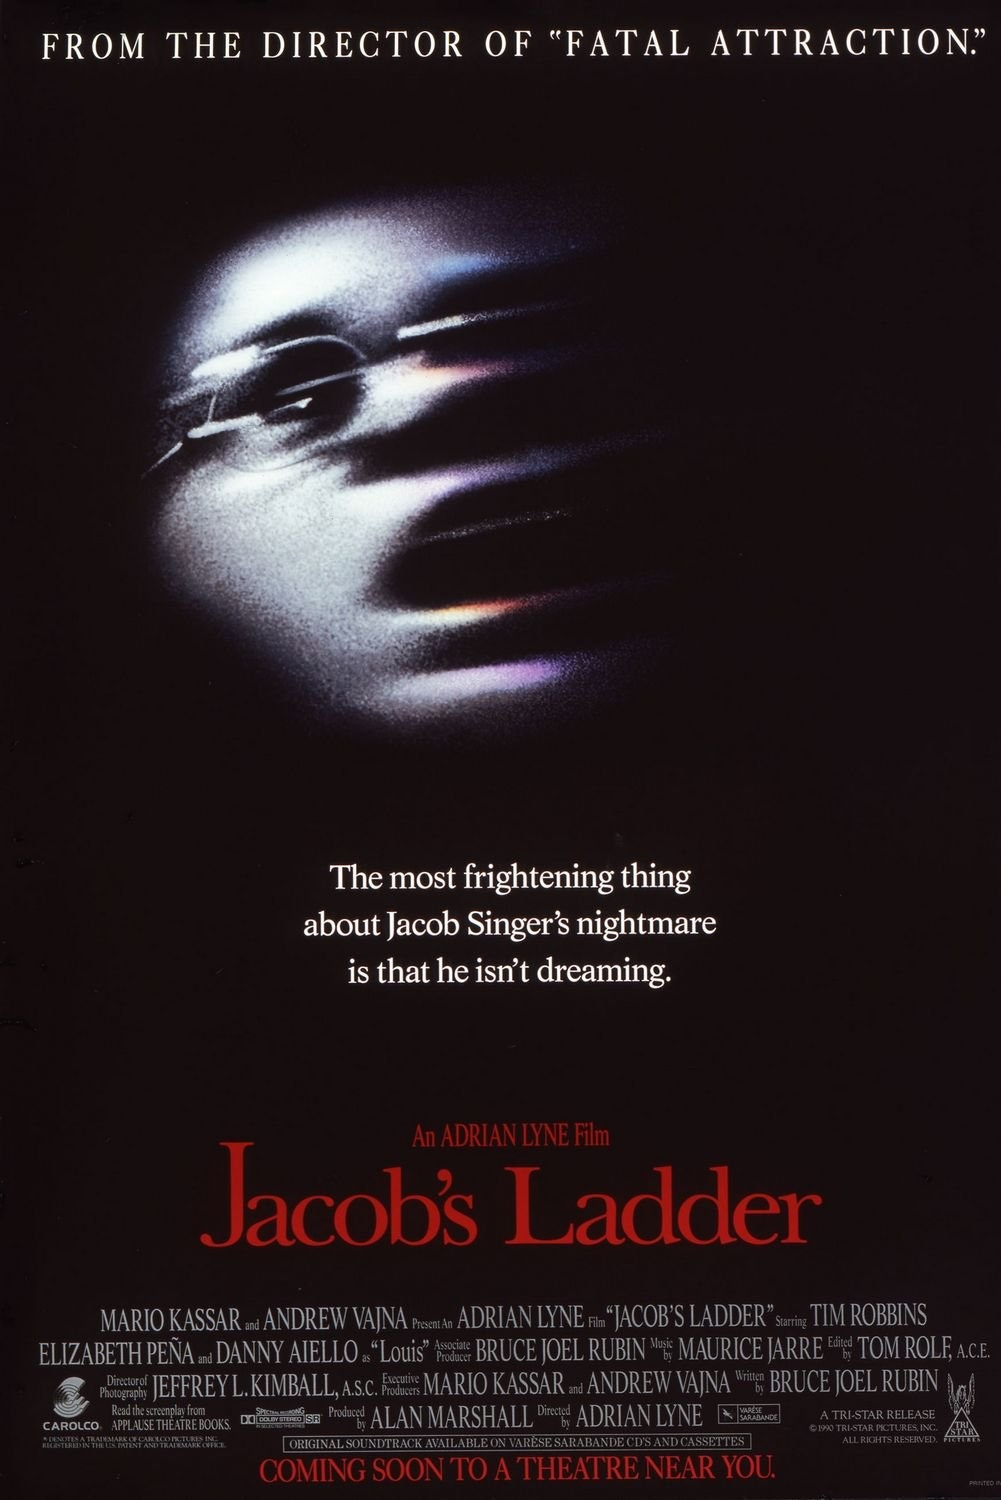 Jacobs Ladder movie poster